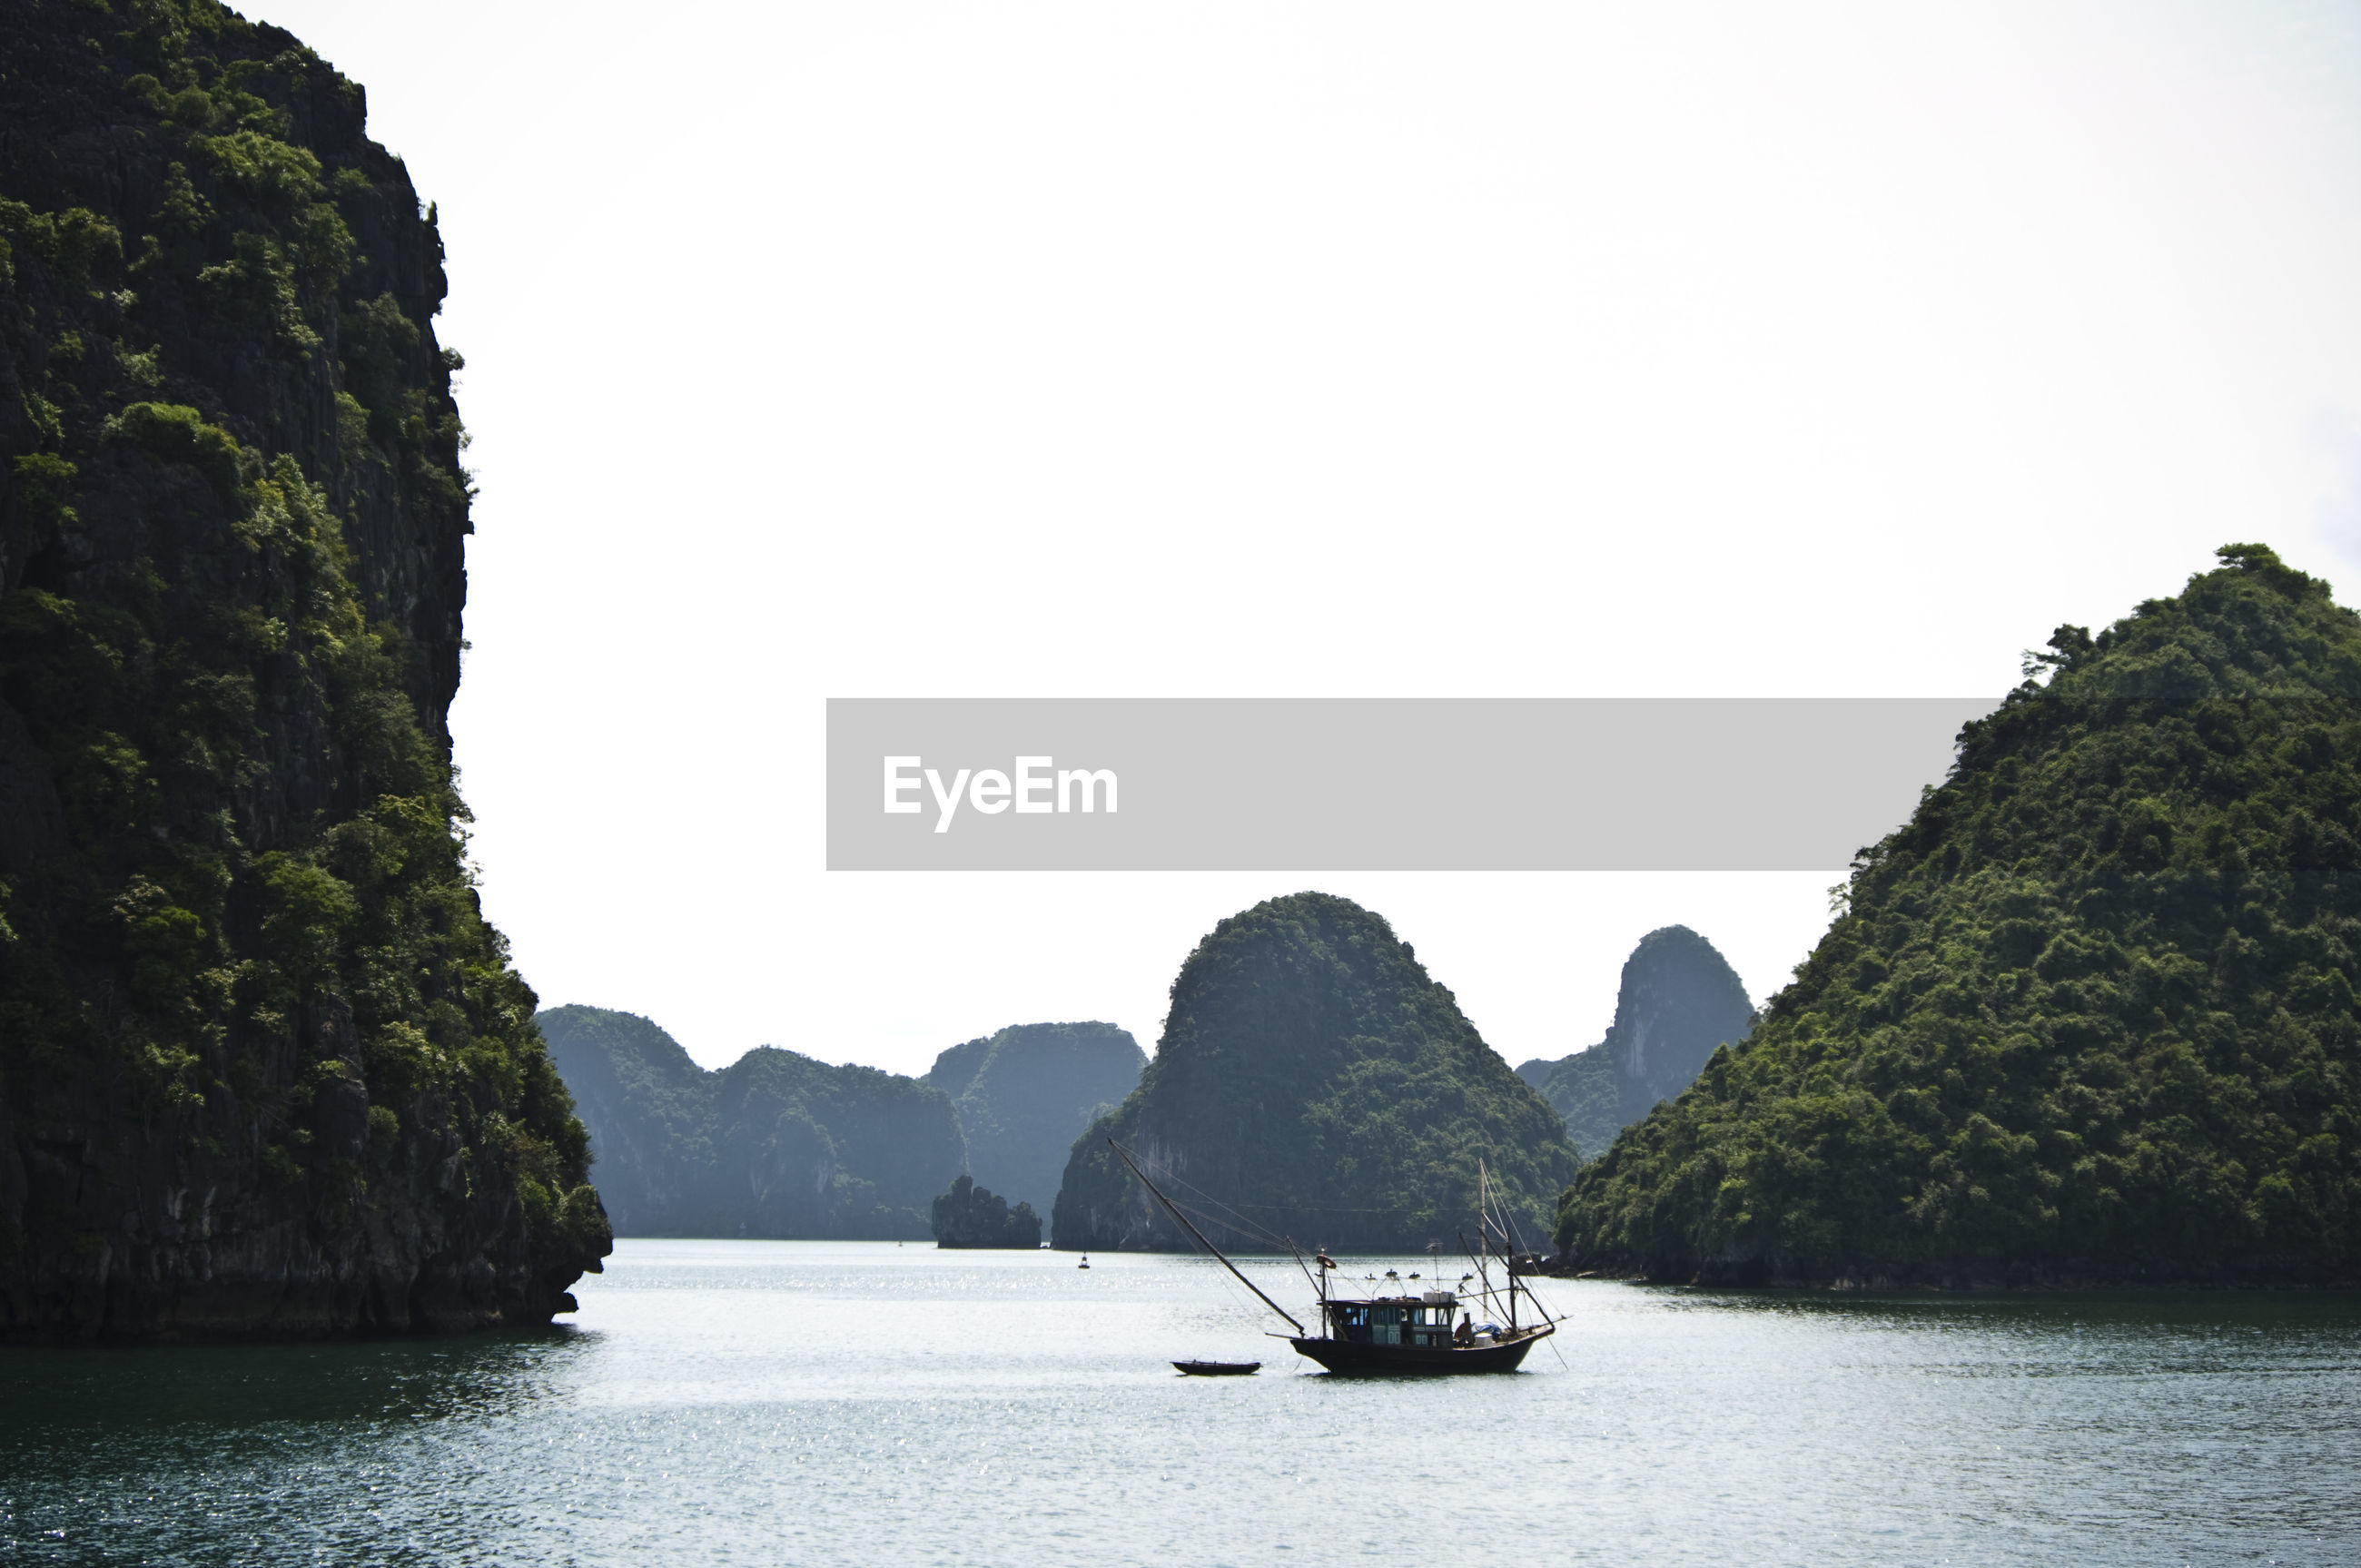 Boat sailing on river against rock formations